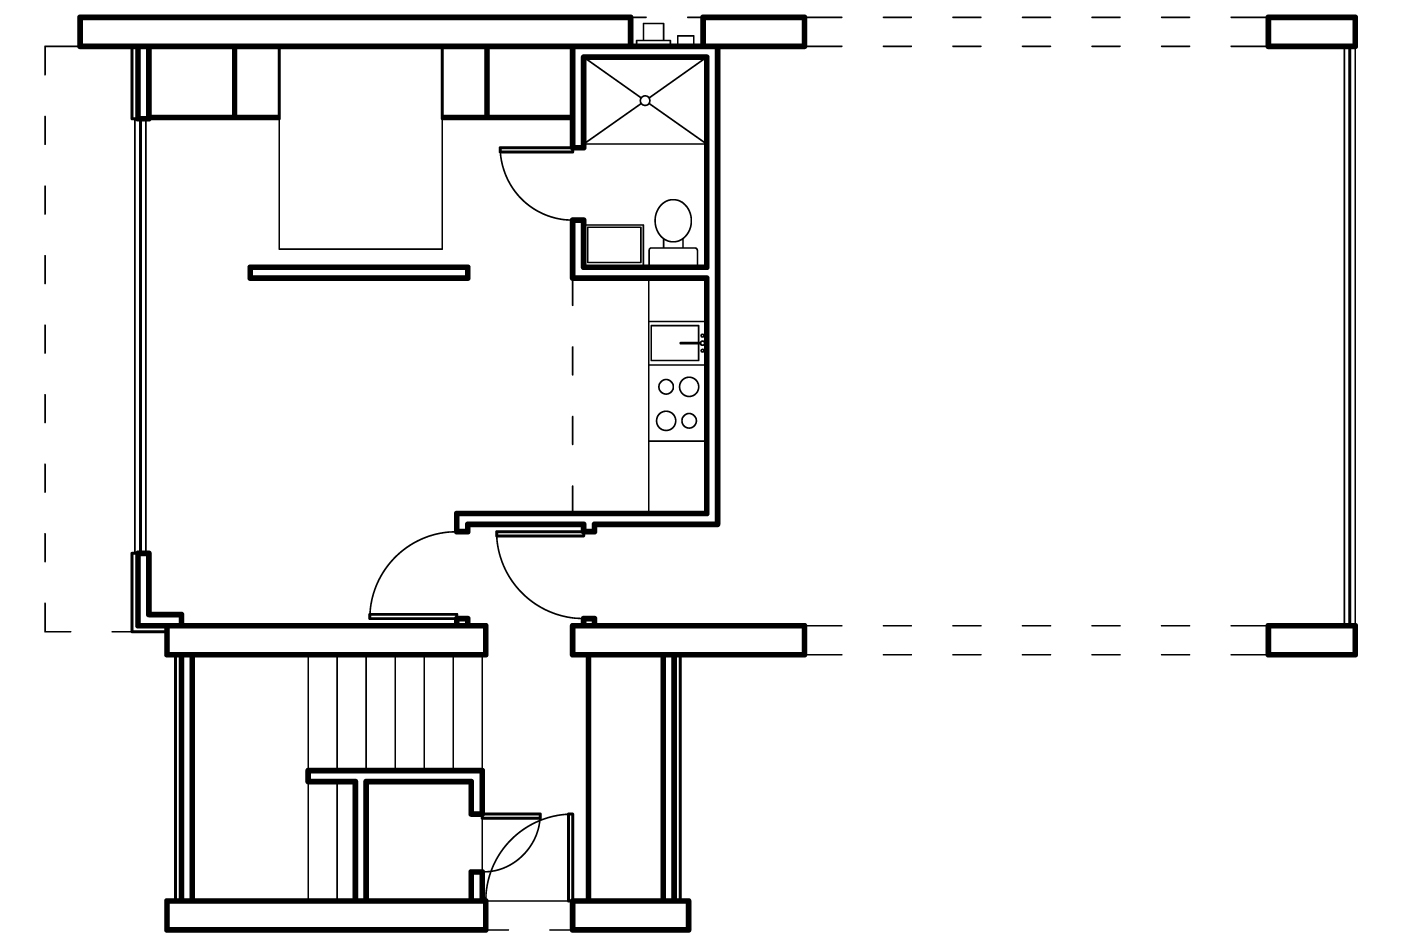 Modern house plans contemporary home designs floor plan 01 for Modern house plans pdf